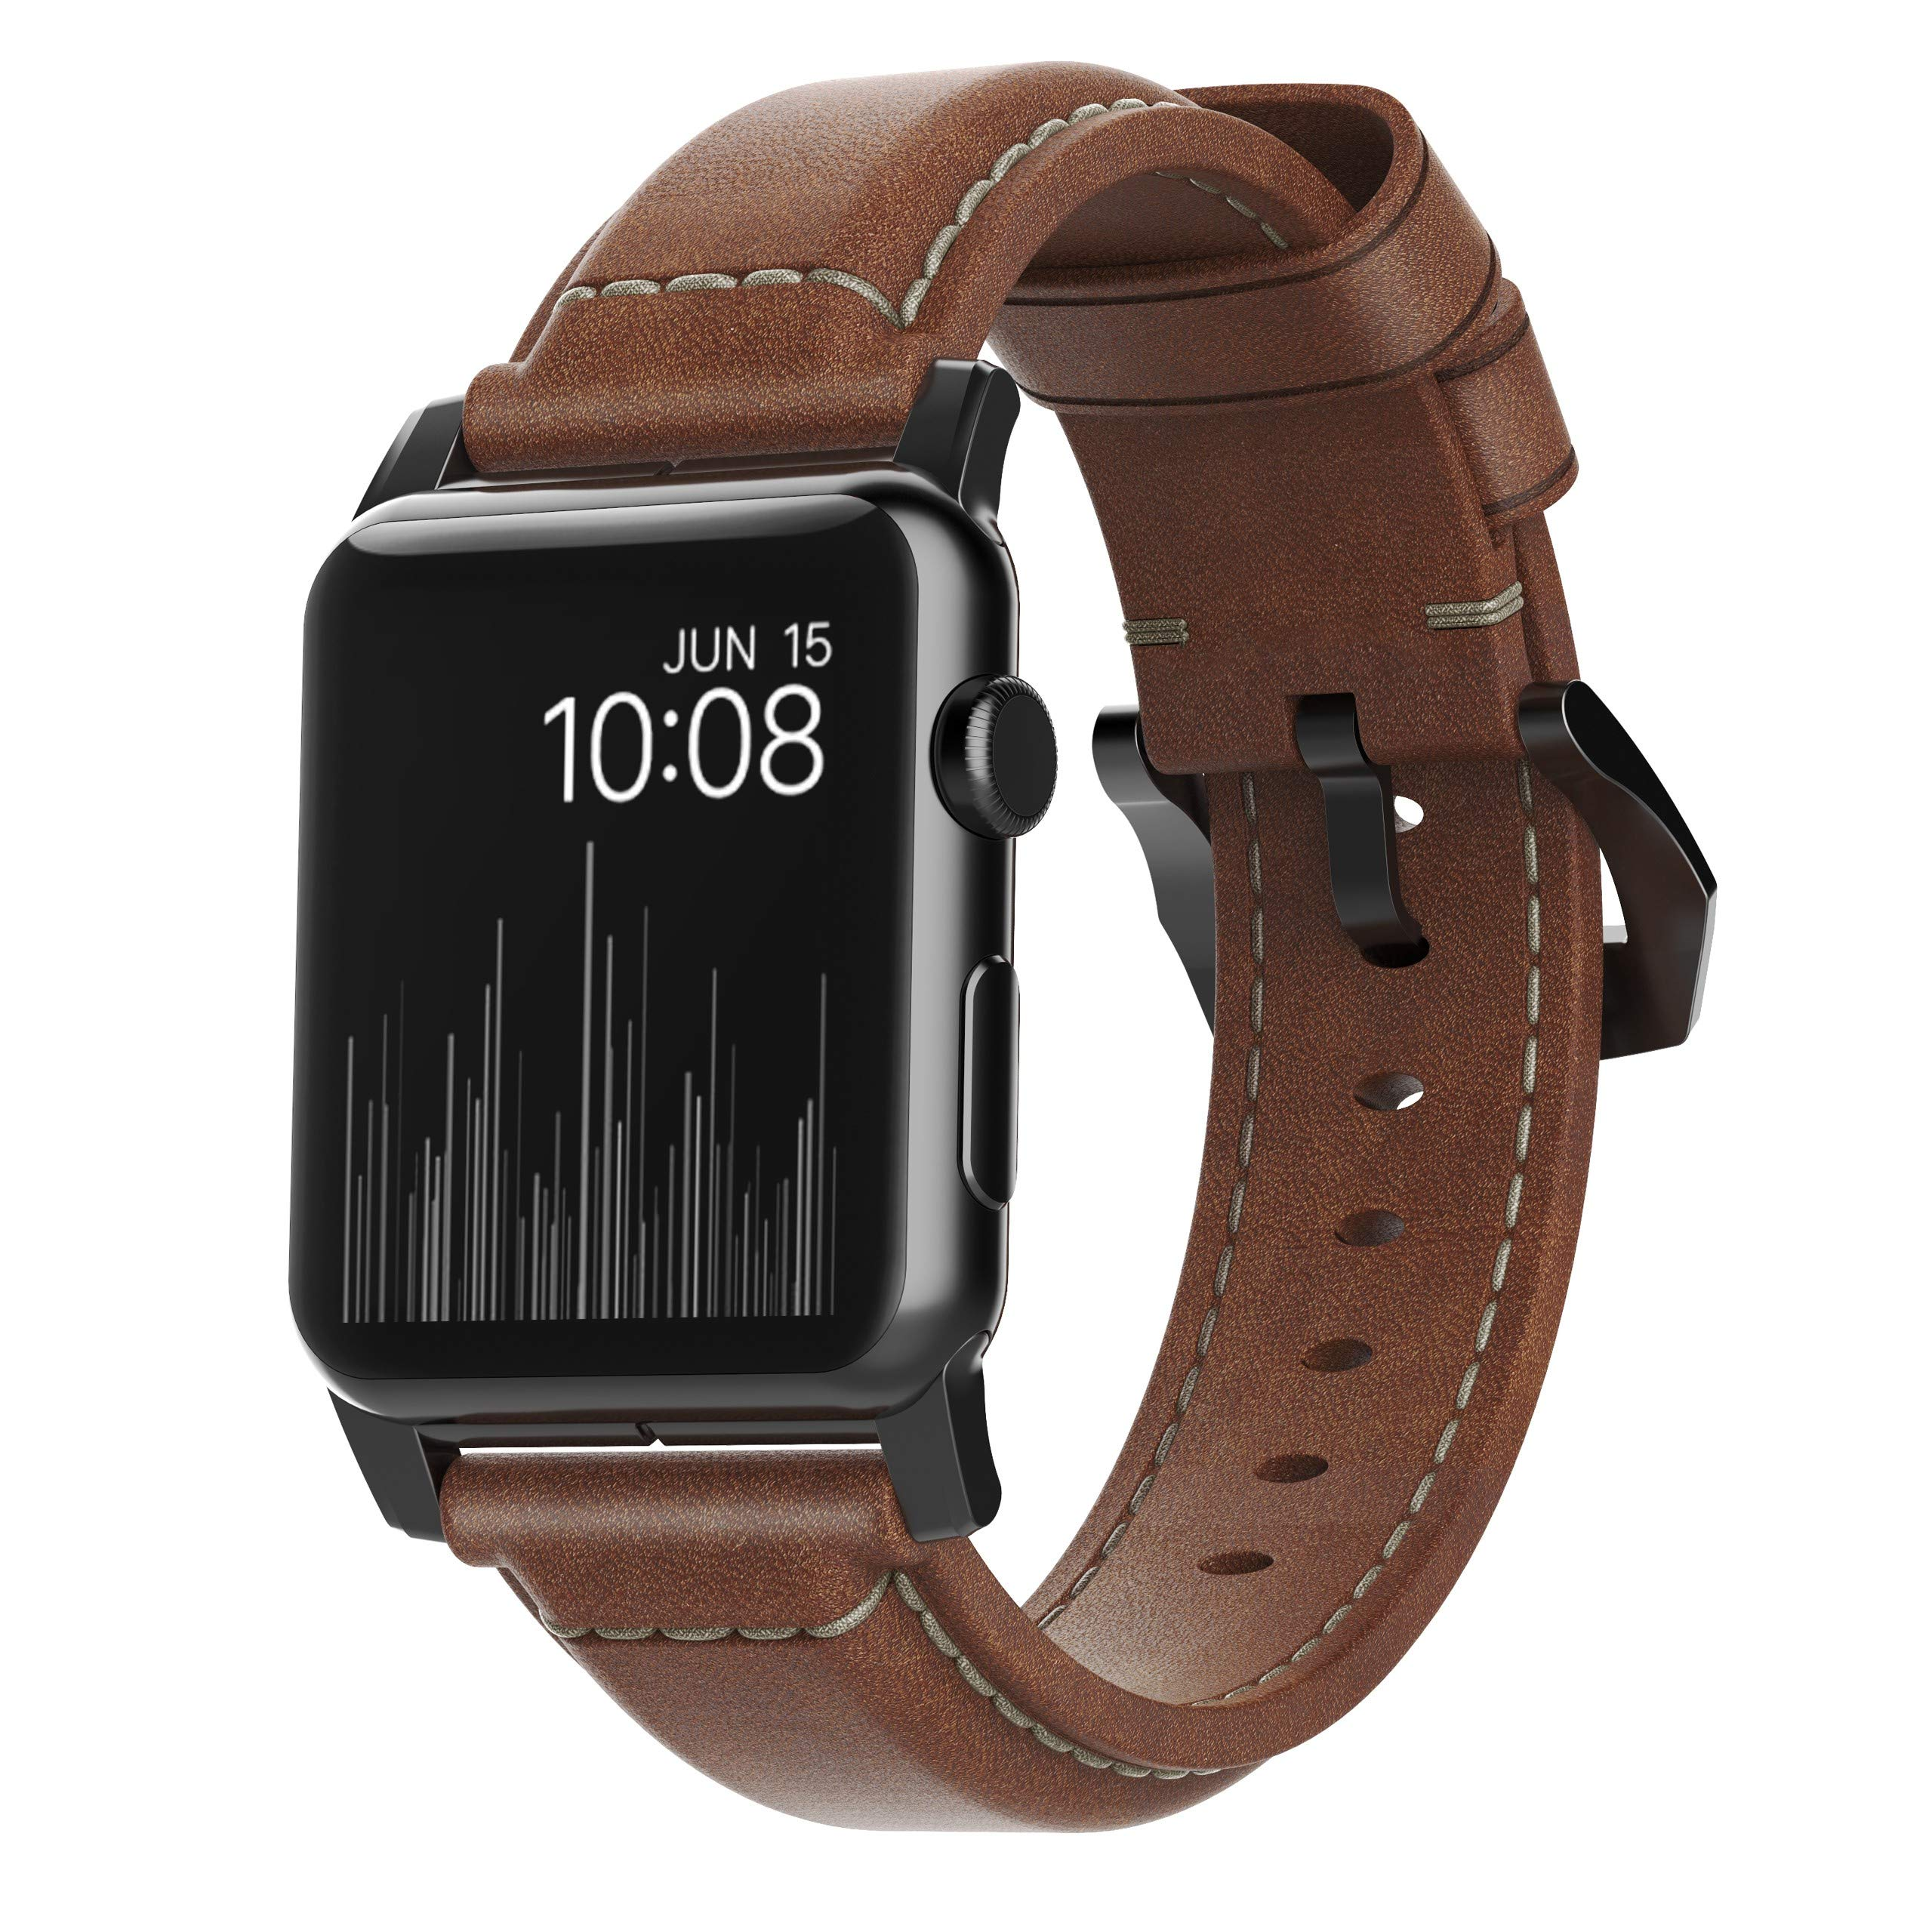 Nomad Horween Leather Strap for Apple Watch - 42mm Traditional Build - Classic Bold Look - Custom Stainless Steel Lugs and Buckle - Black Hardware by Nomad